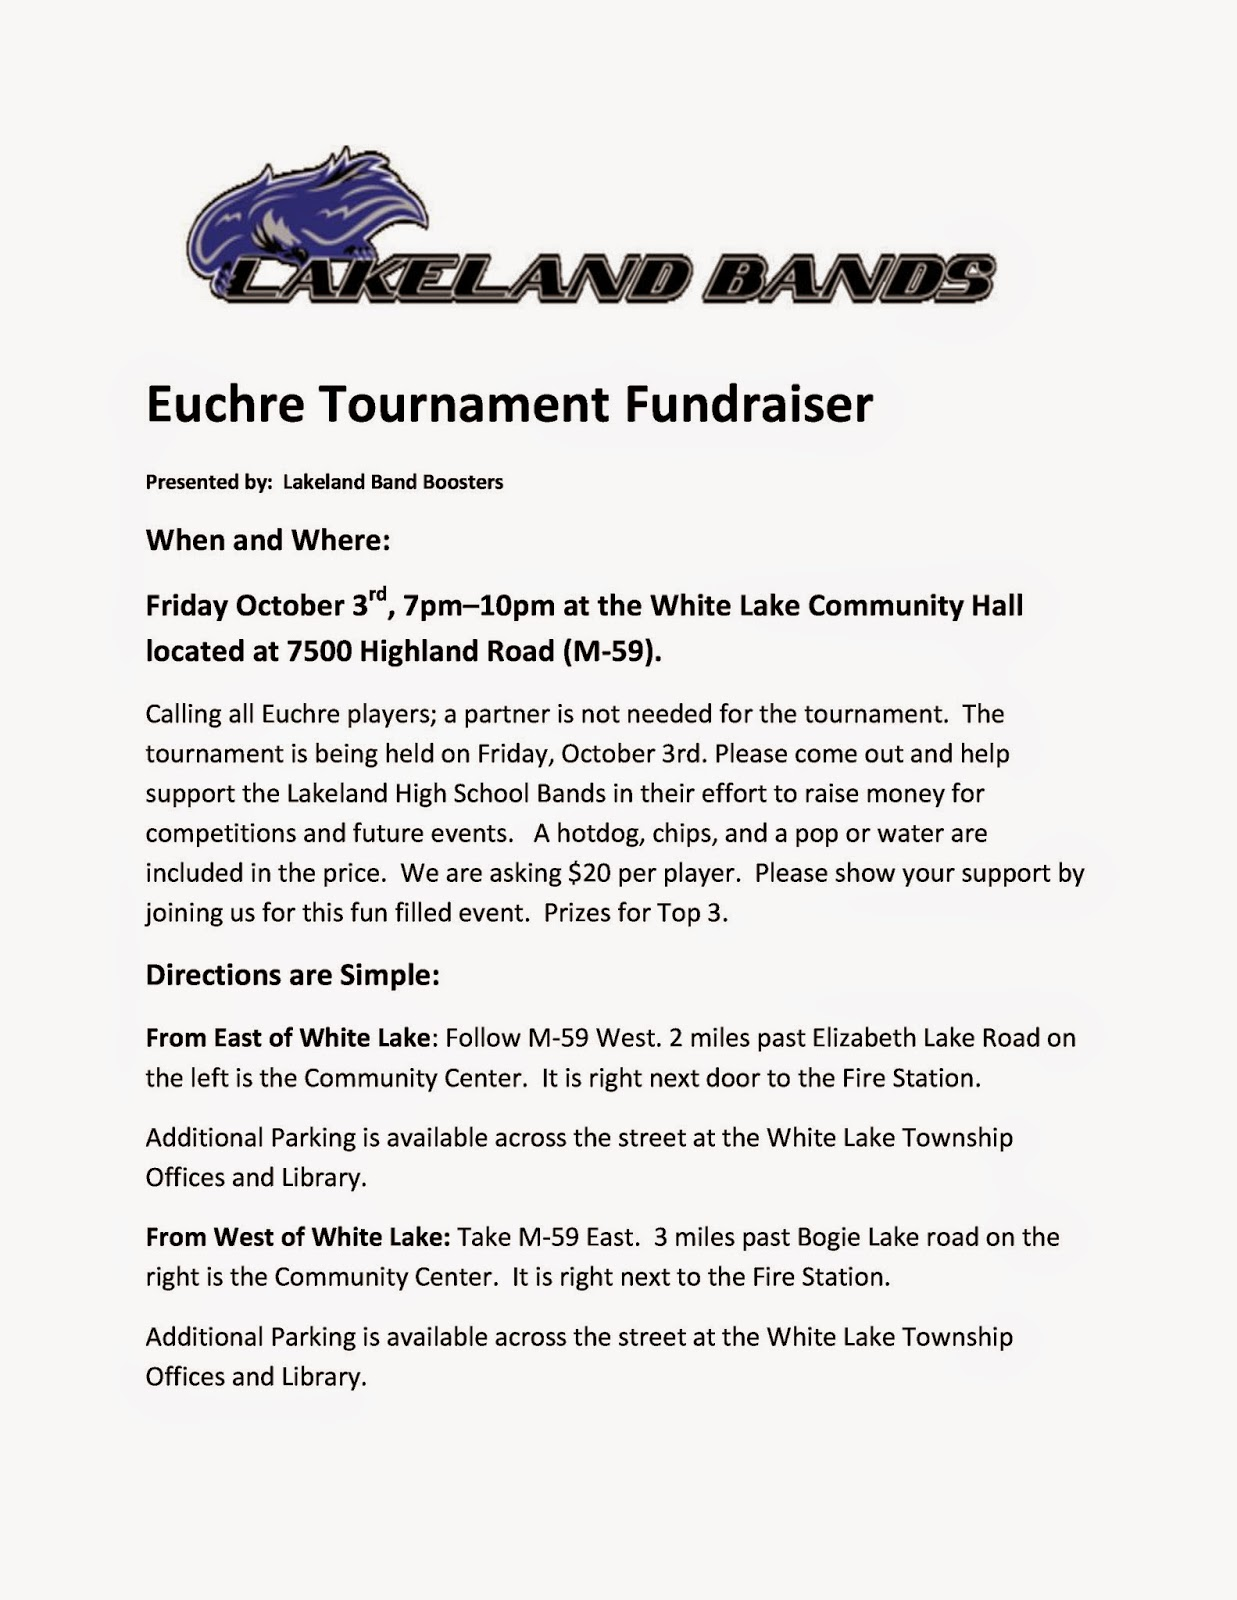 Euchre Tournament Fundraiser